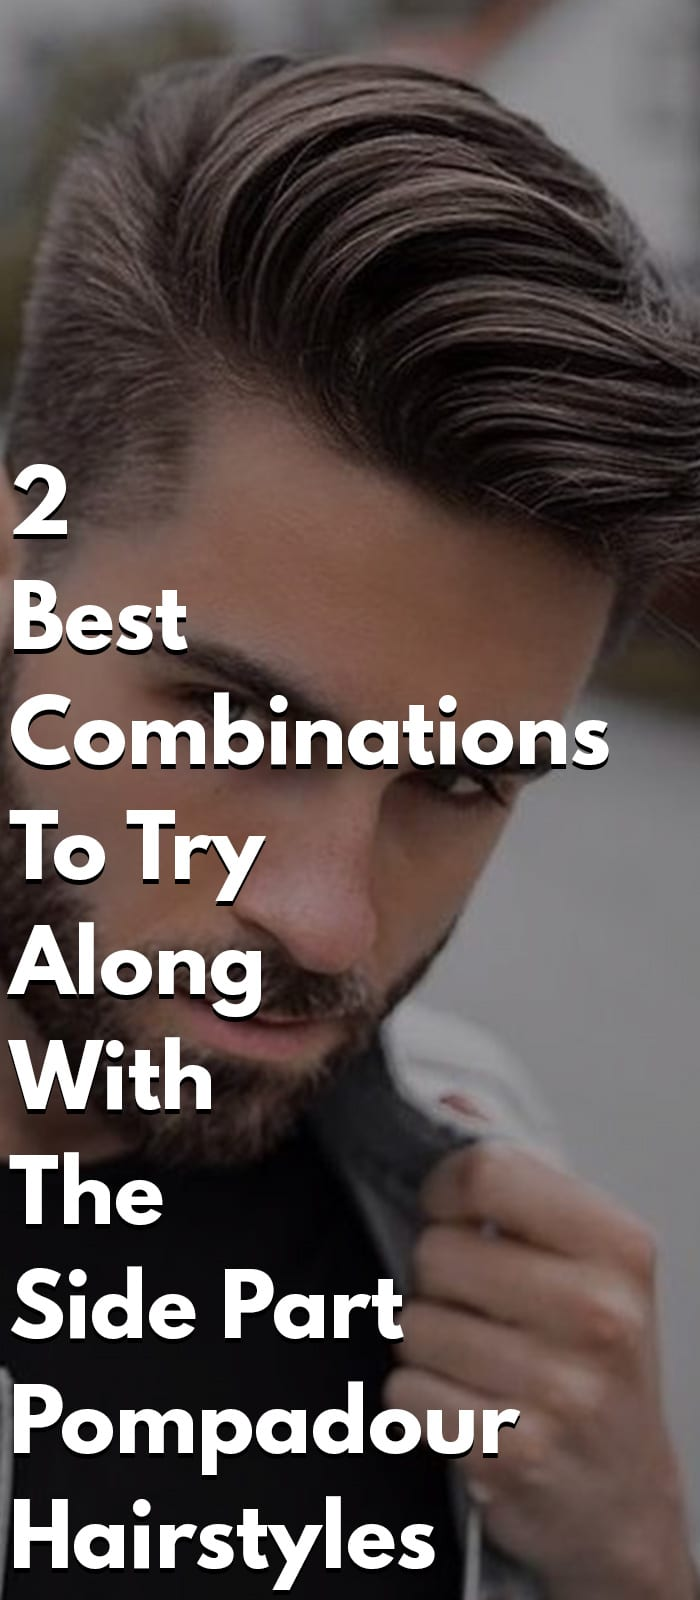 2 Best Combinations To Try Along With The Side Part Pompadour Hairstyles